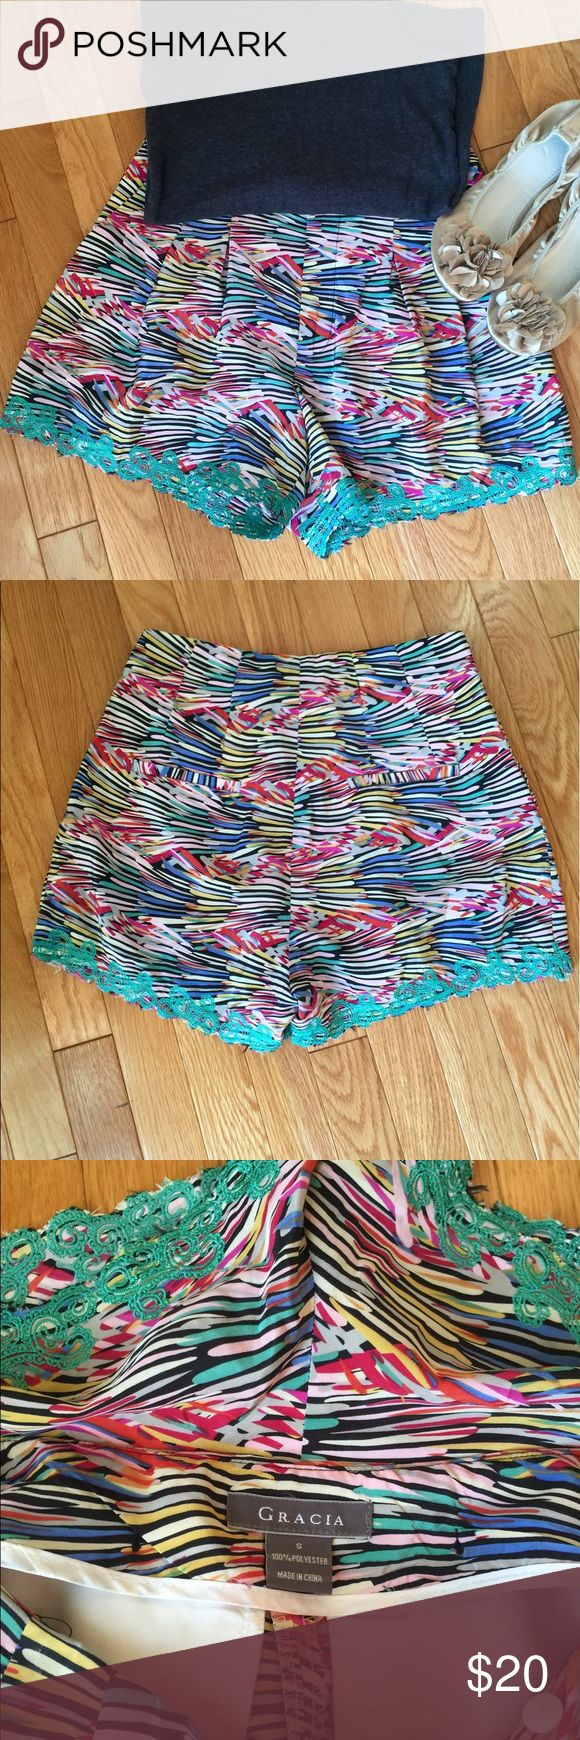 GRACIA contemporary shorts Super soft, silky with teal embroidery at the leg openings. High waisted. Dressy or casual. Like new, worn once. Gracia Shorts